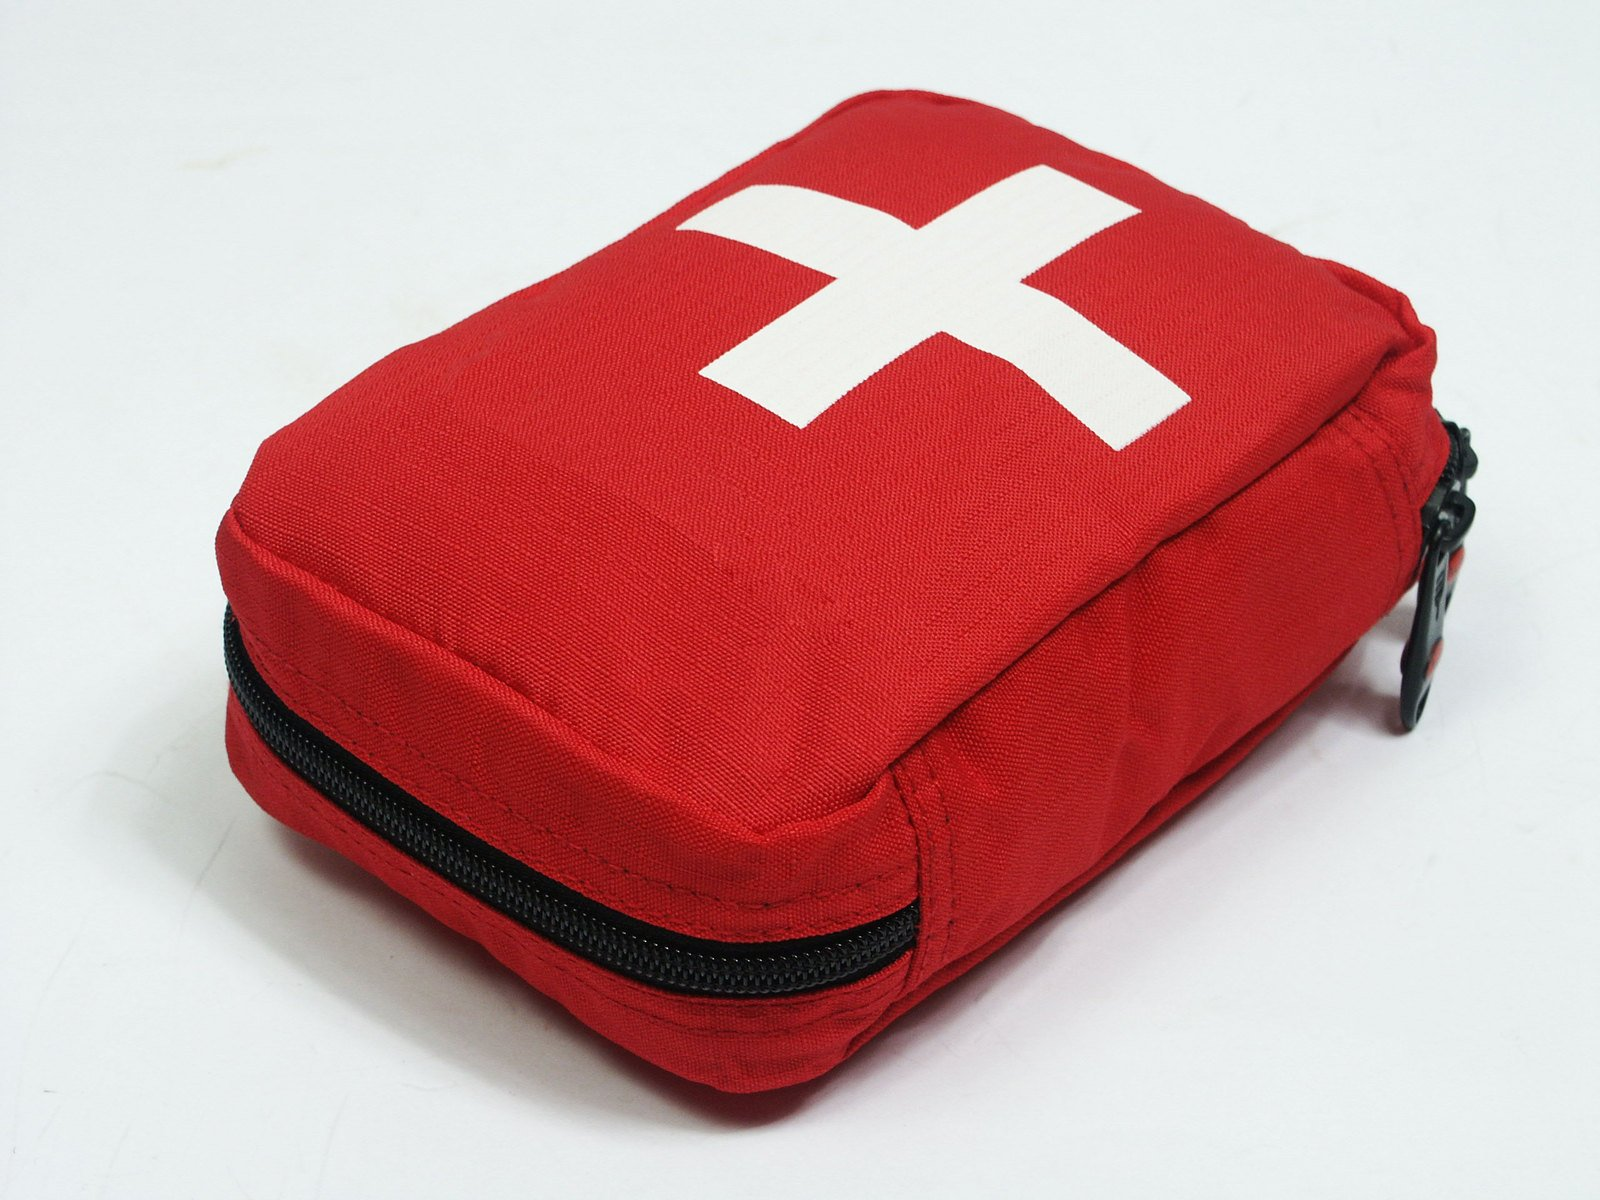 Free First aid kit Stock Photo - FreeImages com